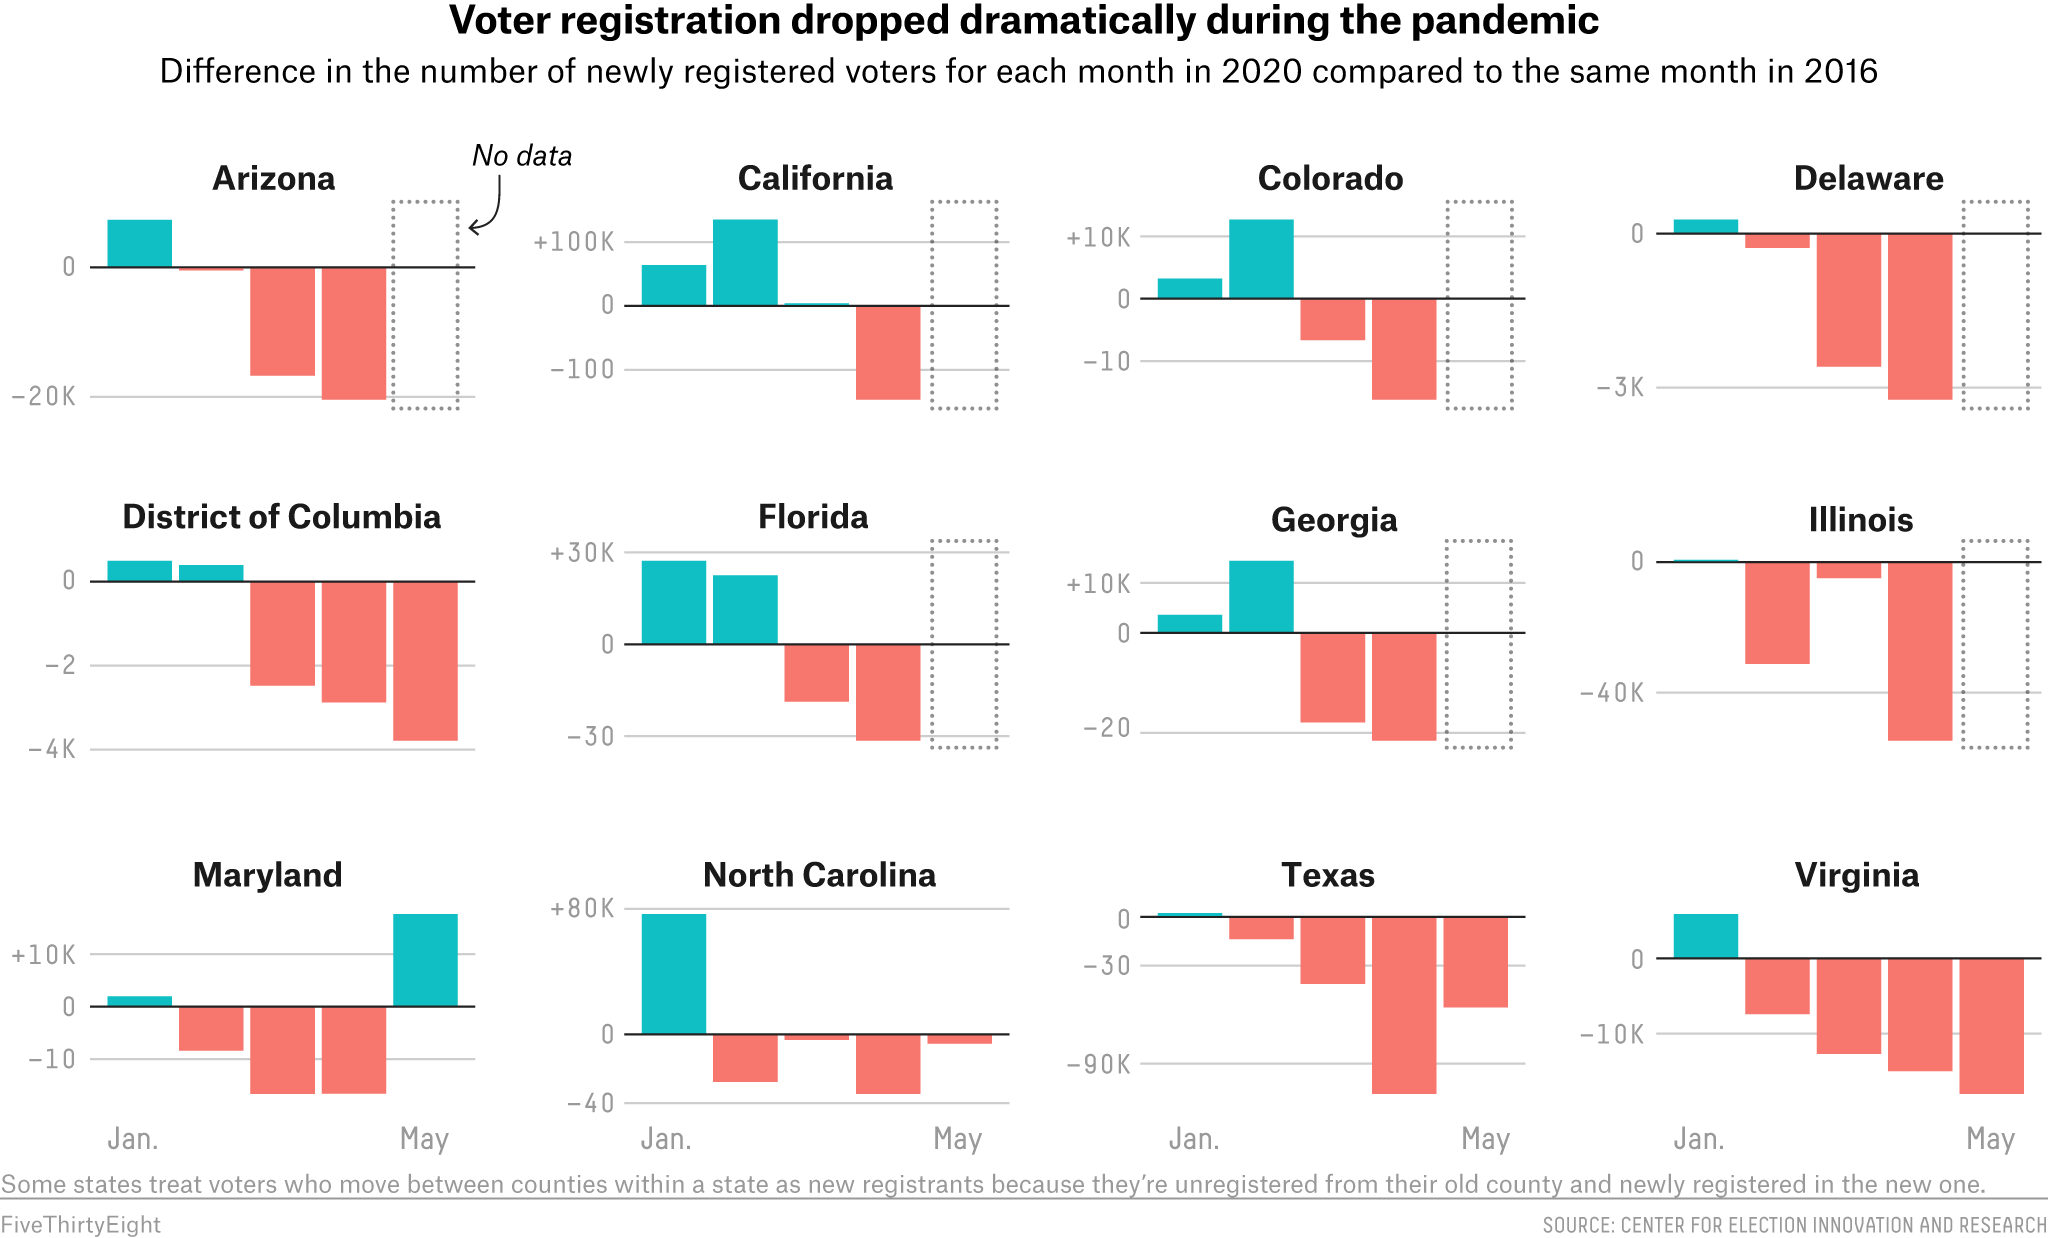 Voter Registrations Are Way, Way Down During The Pandemic 1